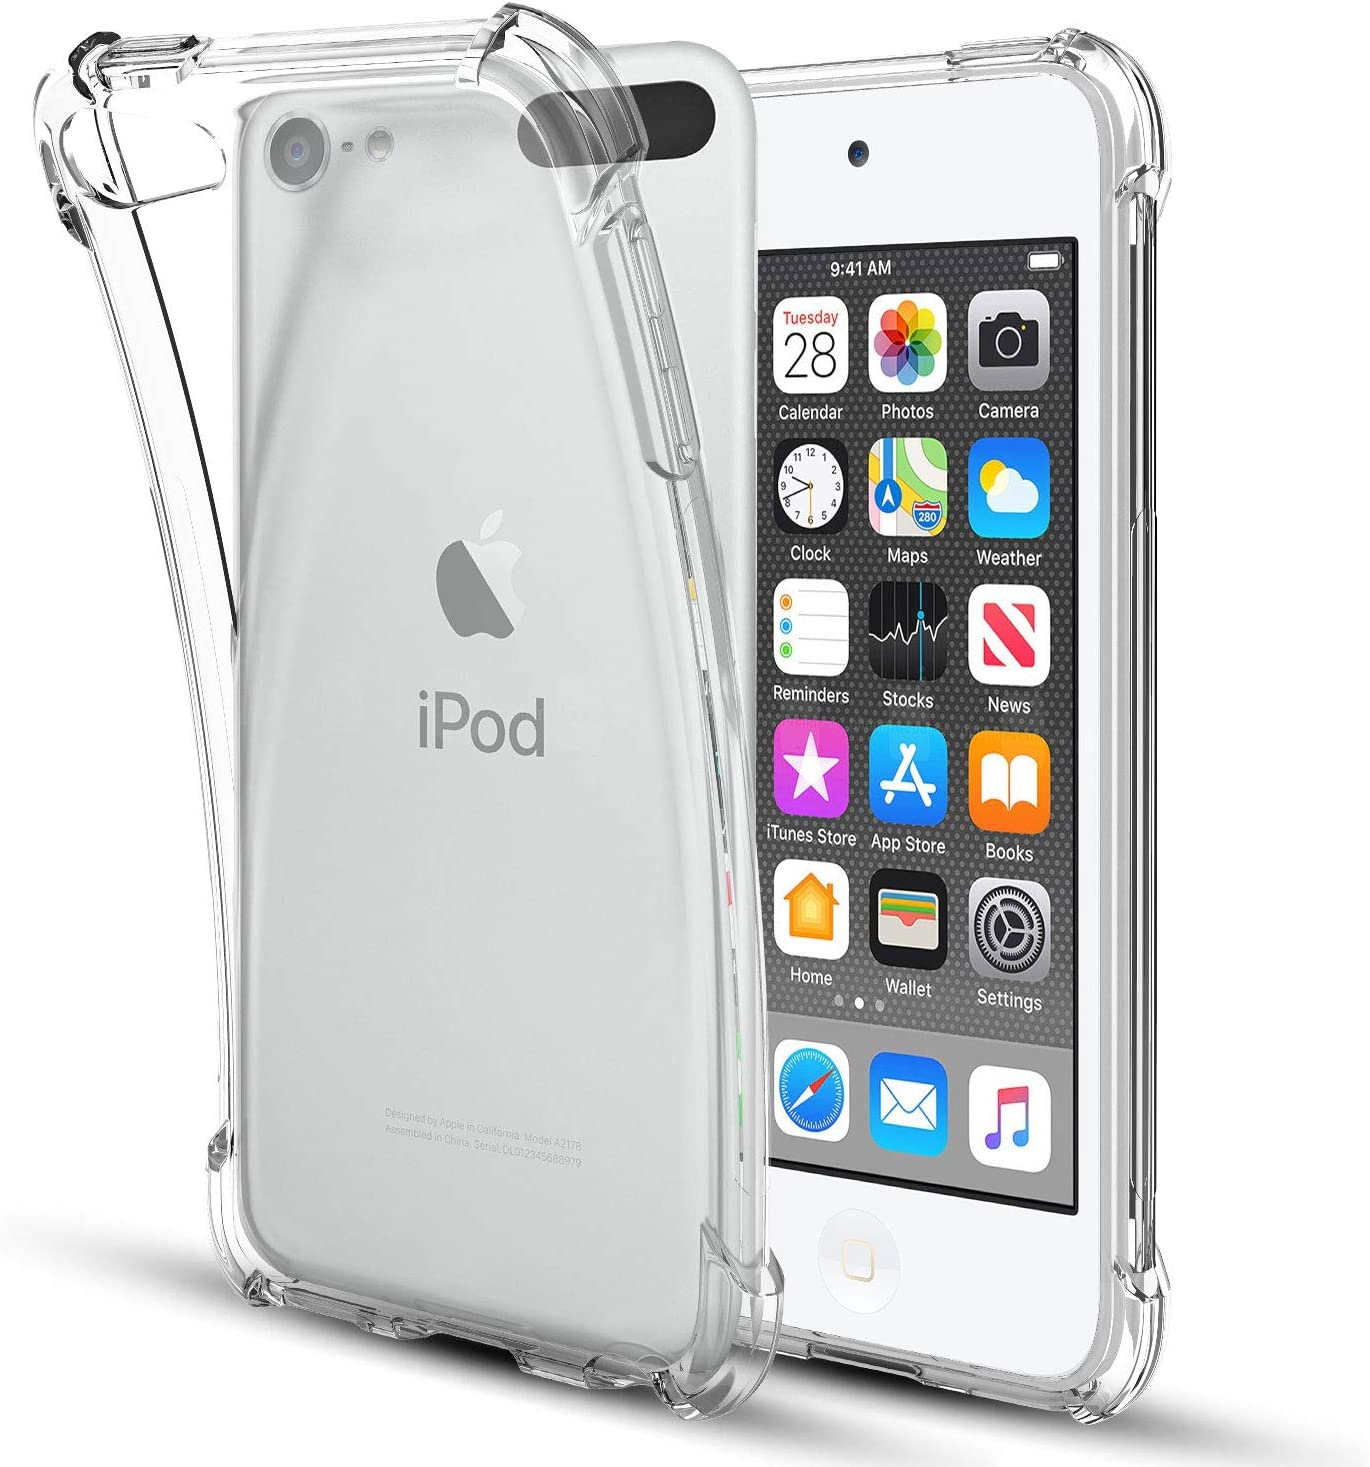 iPod Touch(2019) Case,iPod Touch 7/6 / 5 Case,Four-Corner Clear Soft TPU Silicone Non-Slip Slim Shockproof Bumper Protective Phone Case Cover for Apple iPod Touch 7th/6th/5th Generation,Clear